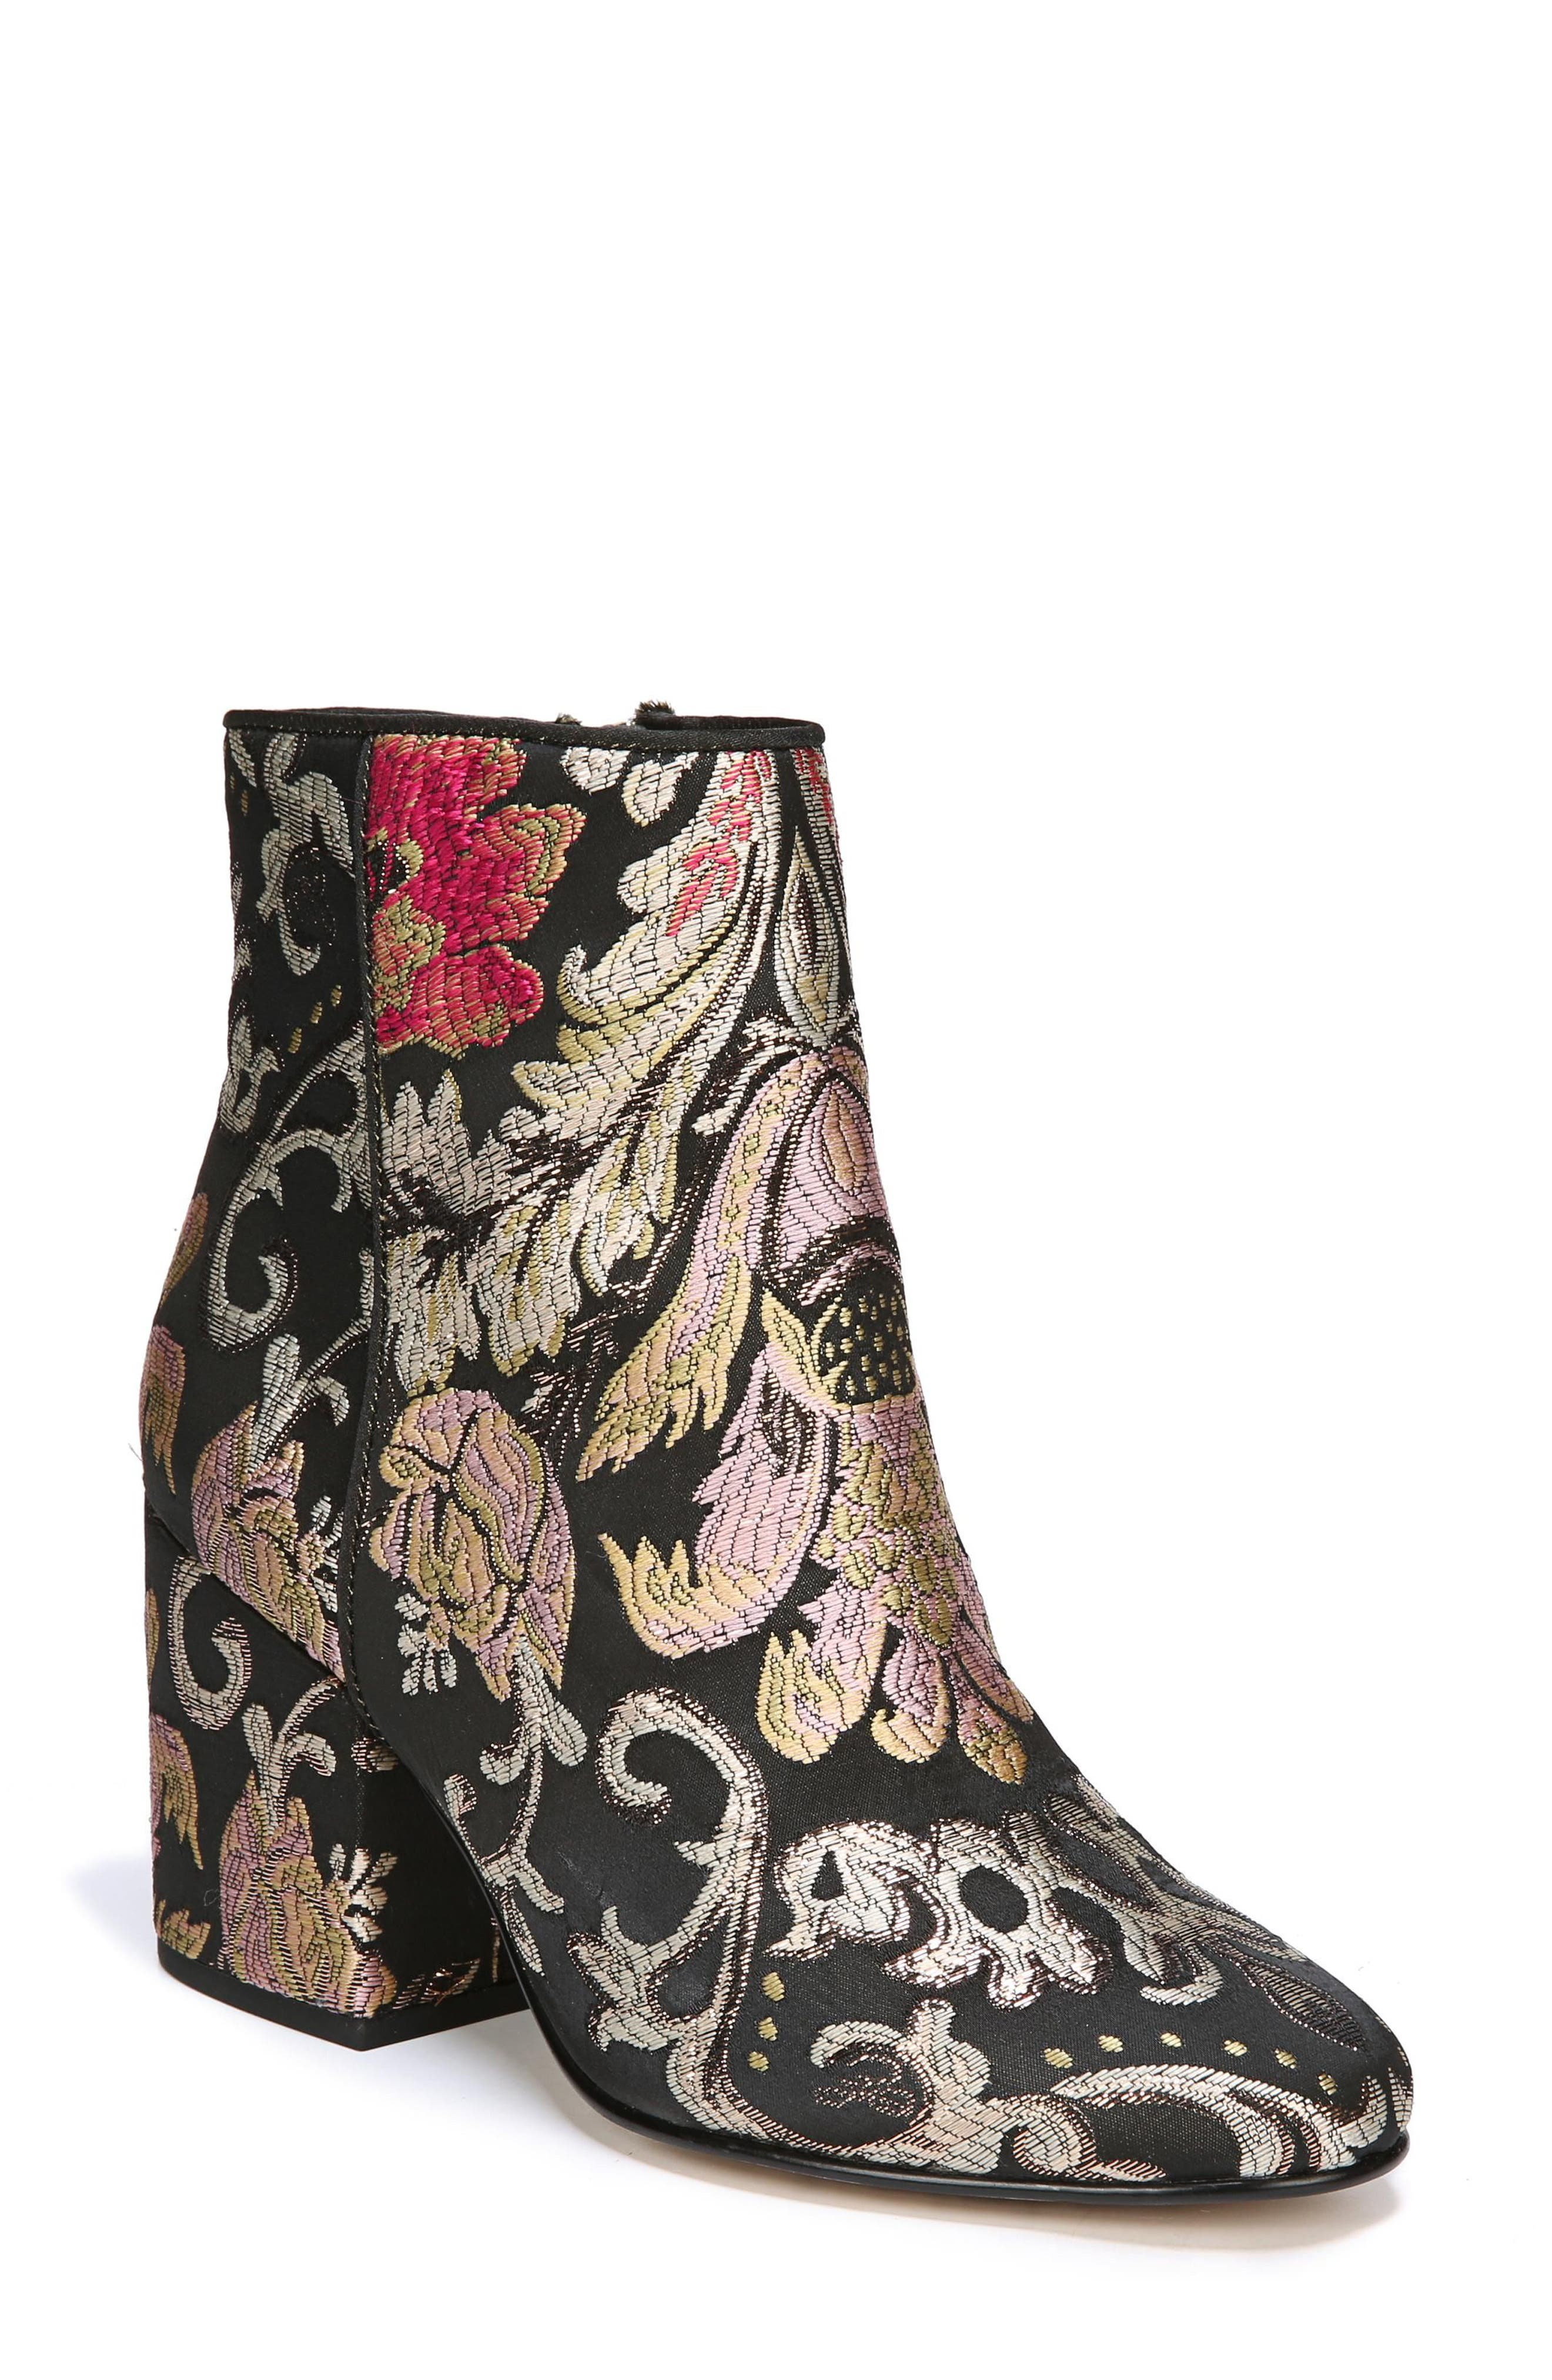 Alternate Image 1 Selected - Sam Edelman 'Taye' Bootie (Women)